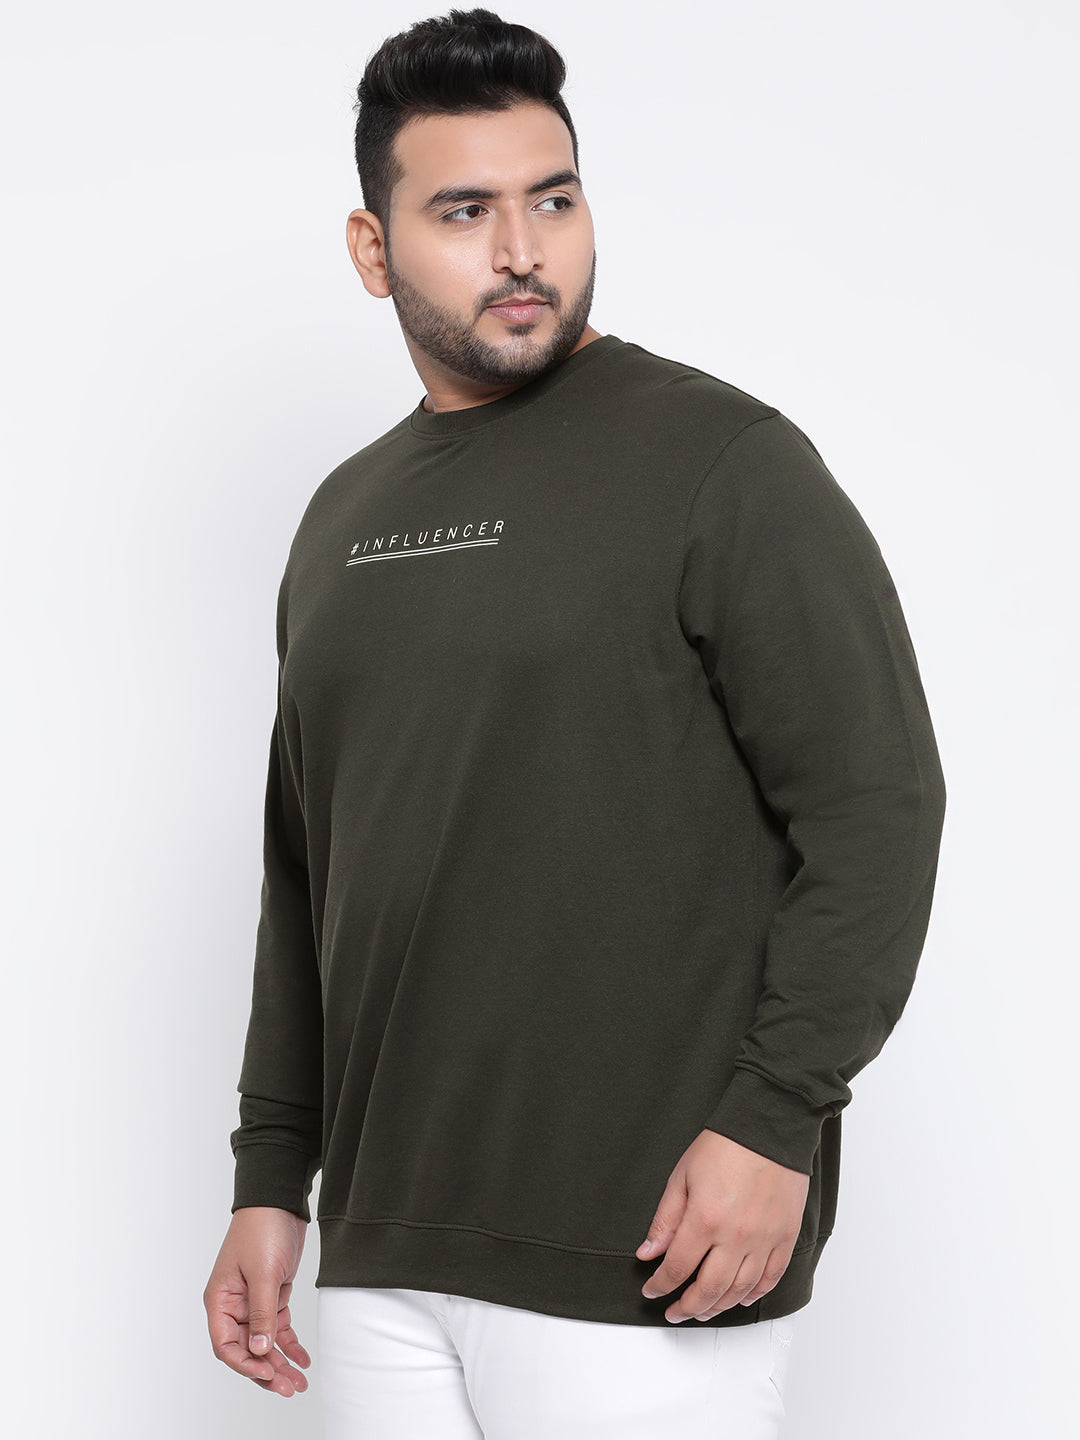 Octave Apparels Grey Sweatshirt for Men